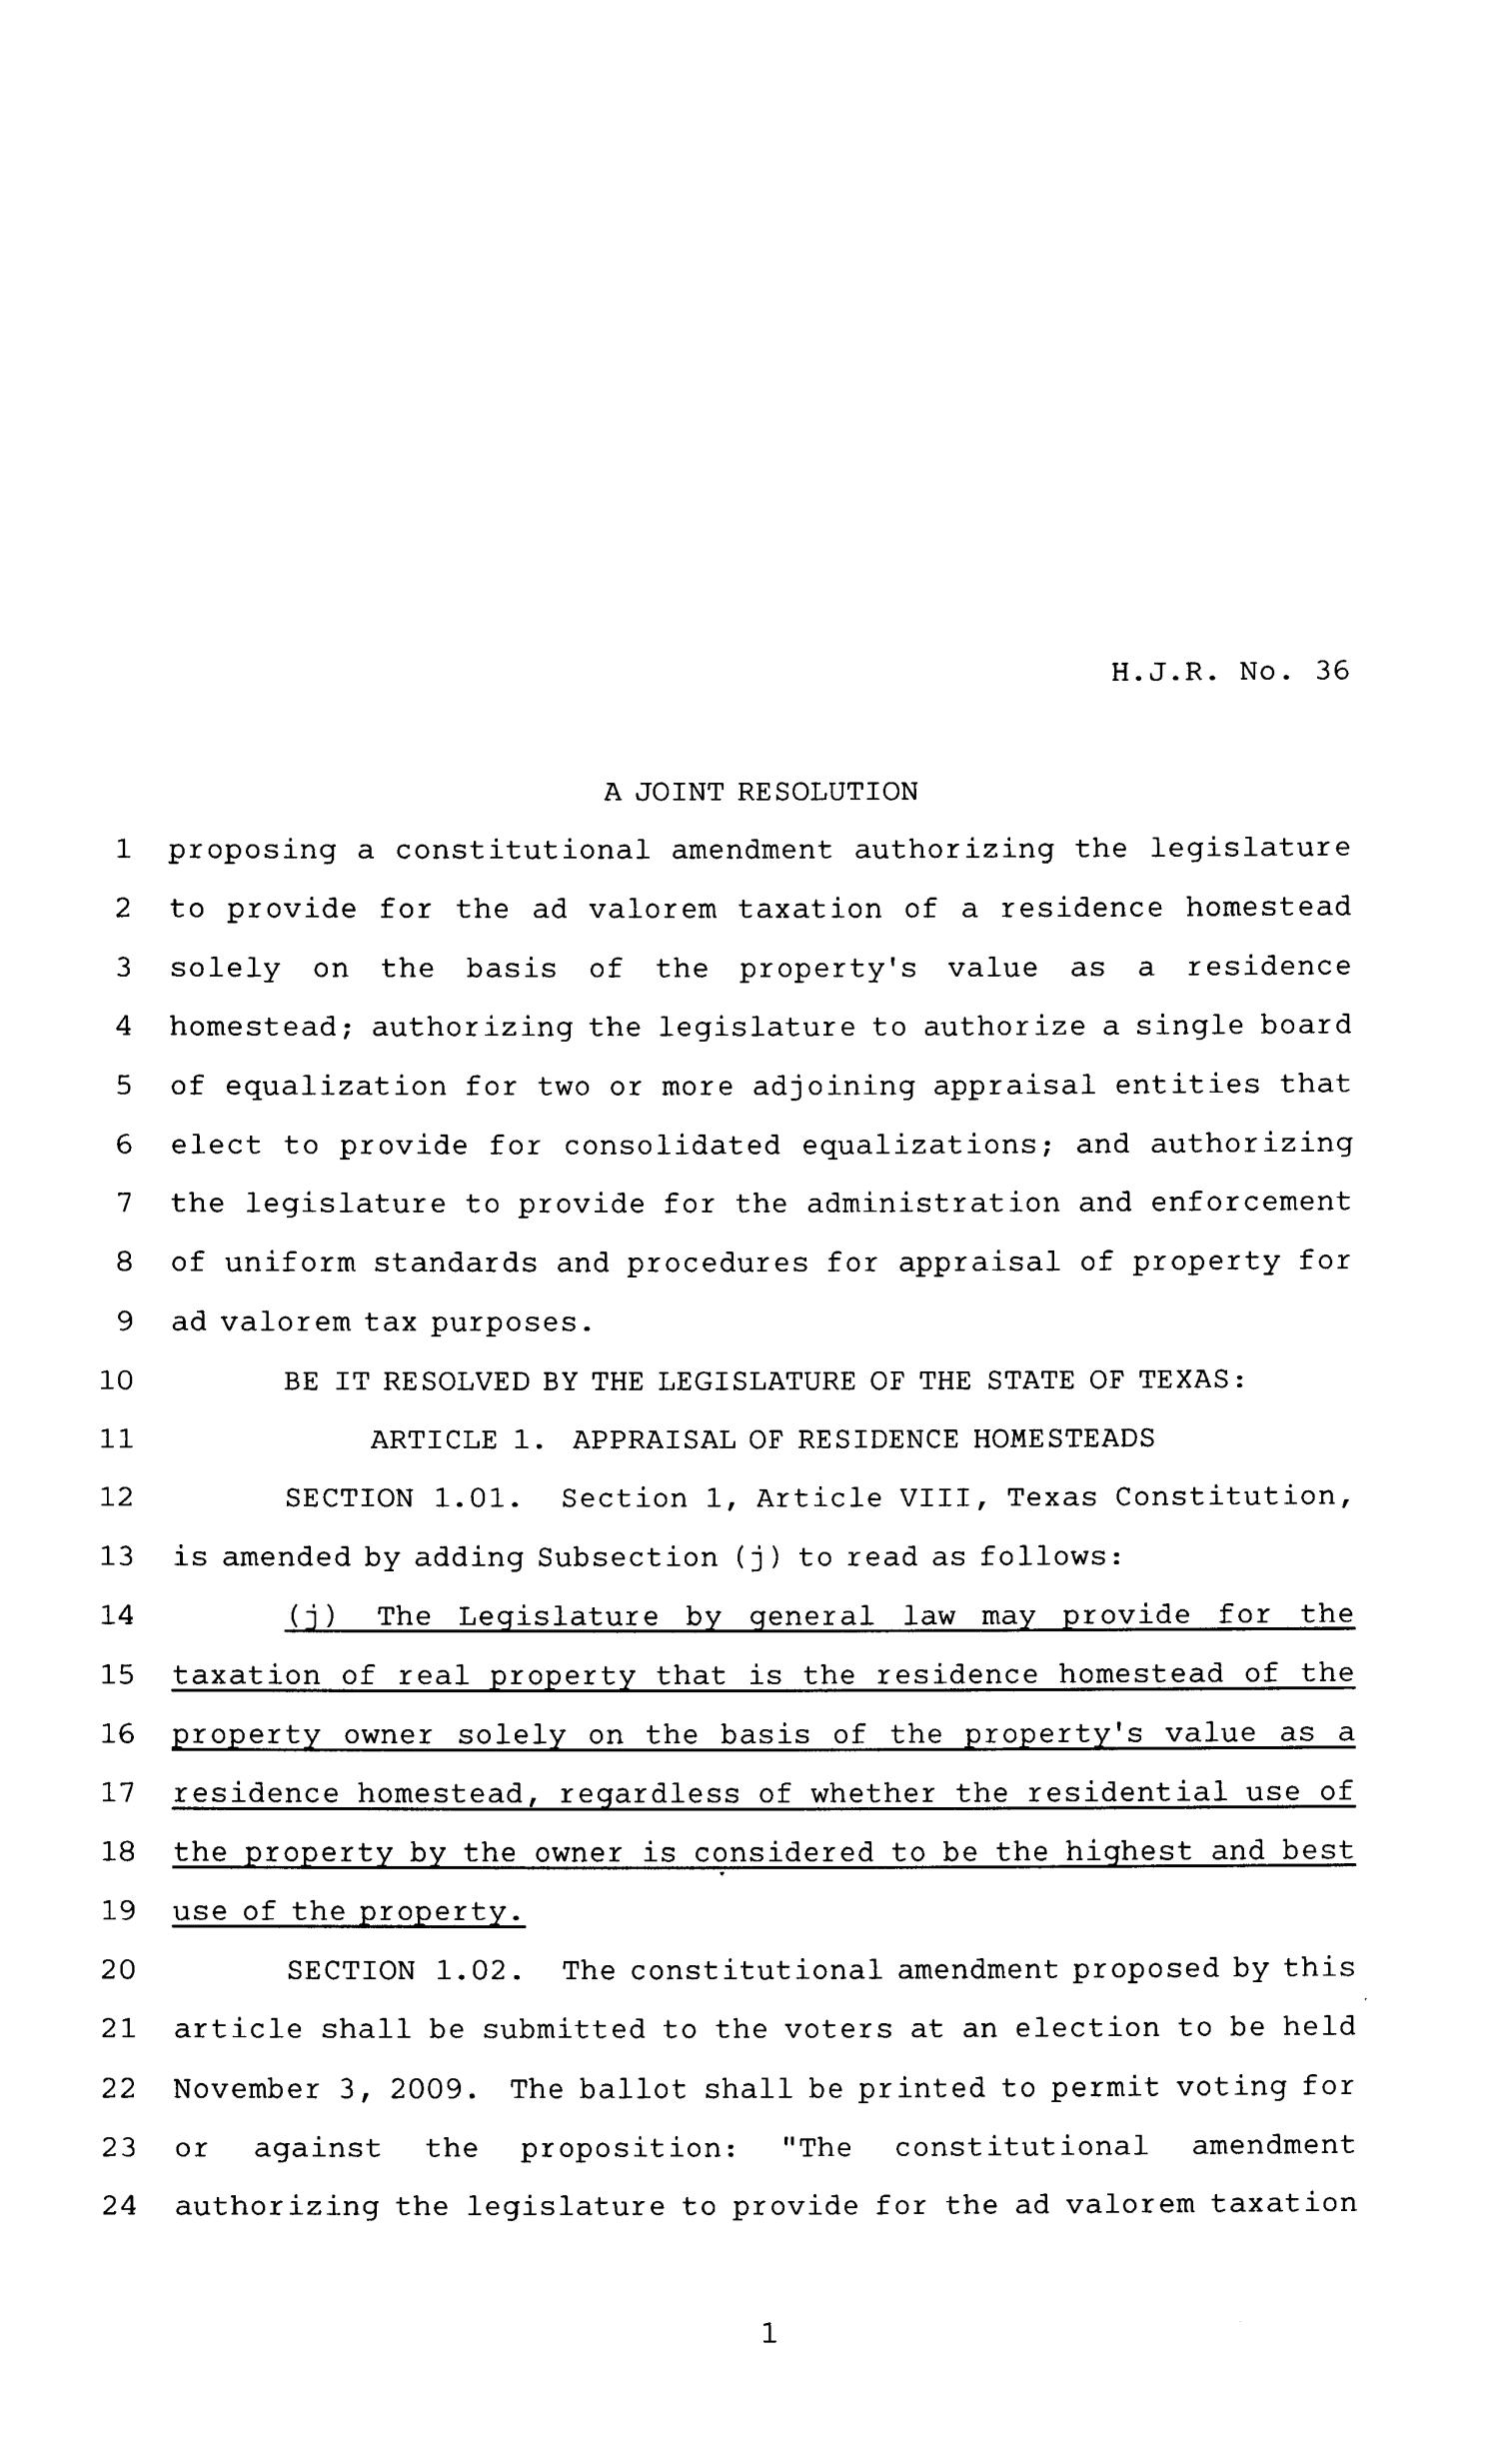 81st Texas Legislature, House Joint Resolutions, House Bill 36                                                                                                      [Sequence #]: 1 of 4